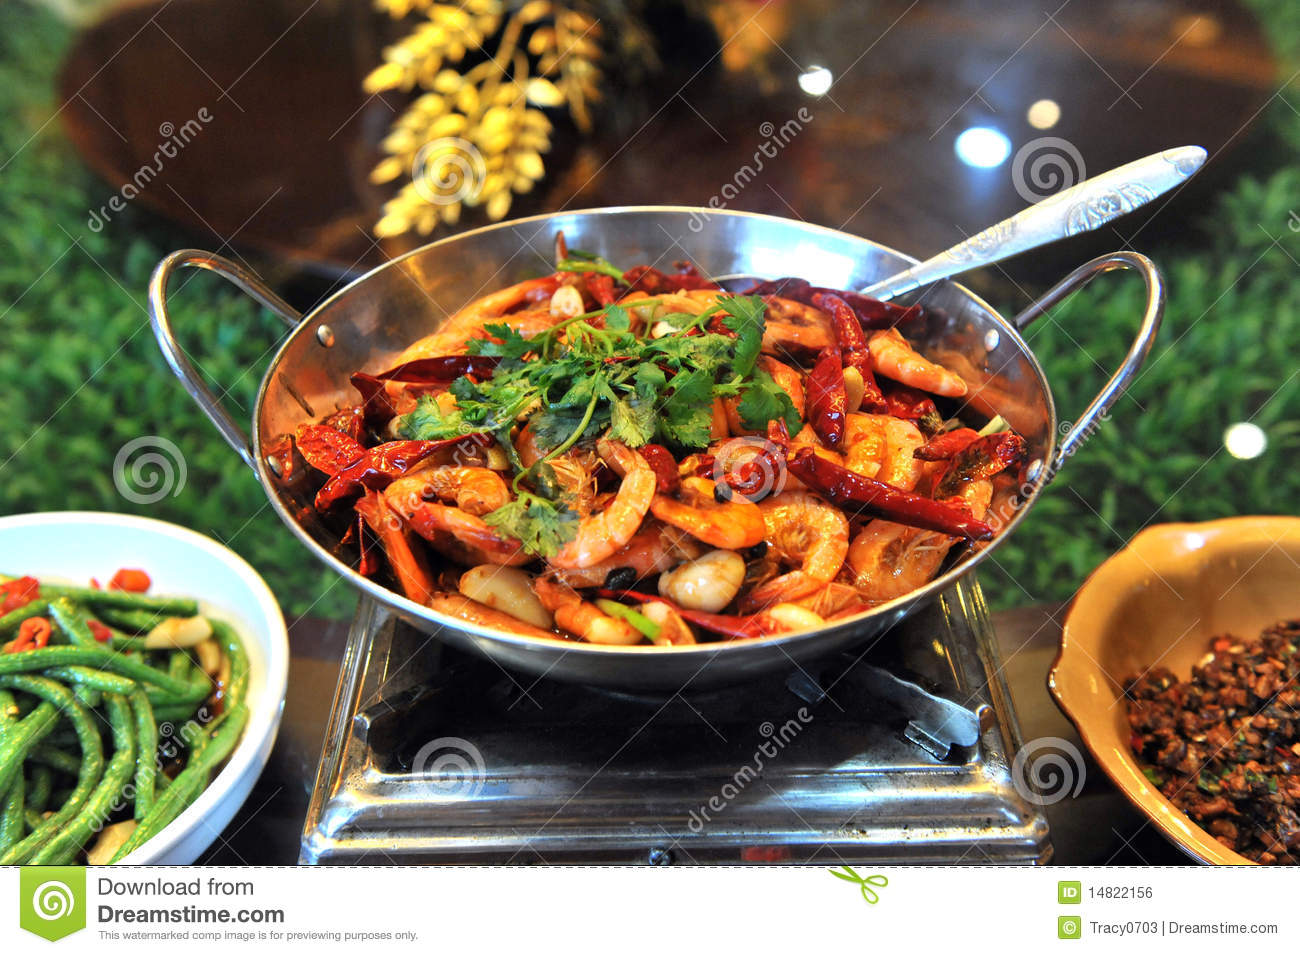 Chinese cuisine royalty free stock image image 14822156 for Ajk chinese cuisine